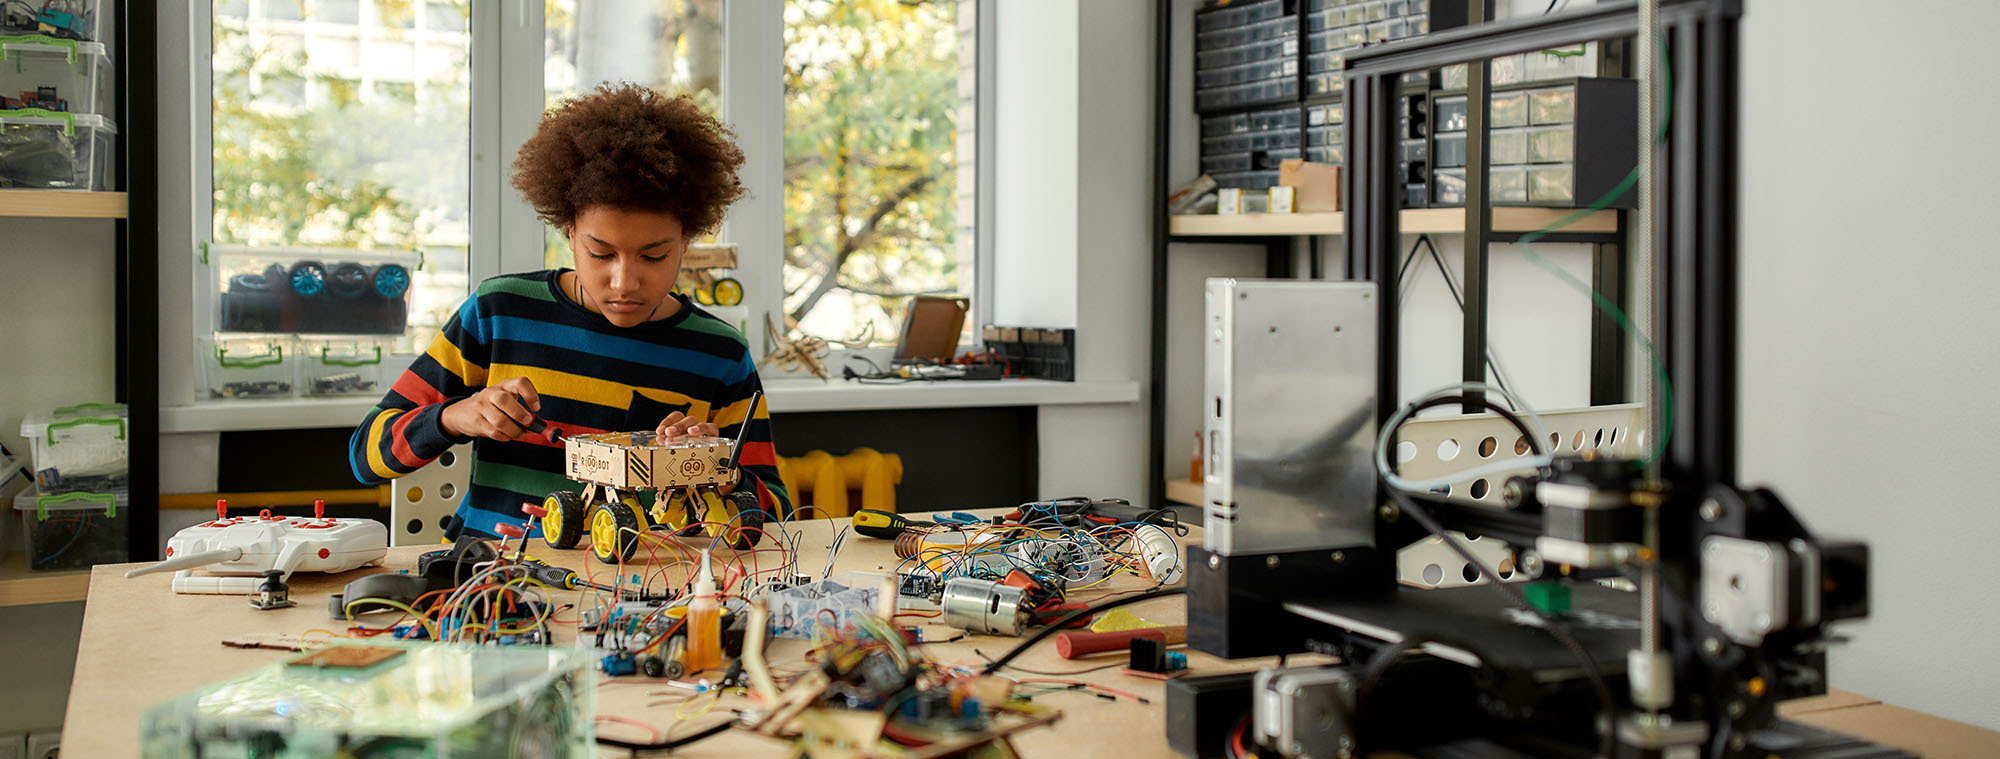 Amazon invests in the next generation of engineers - Image 4